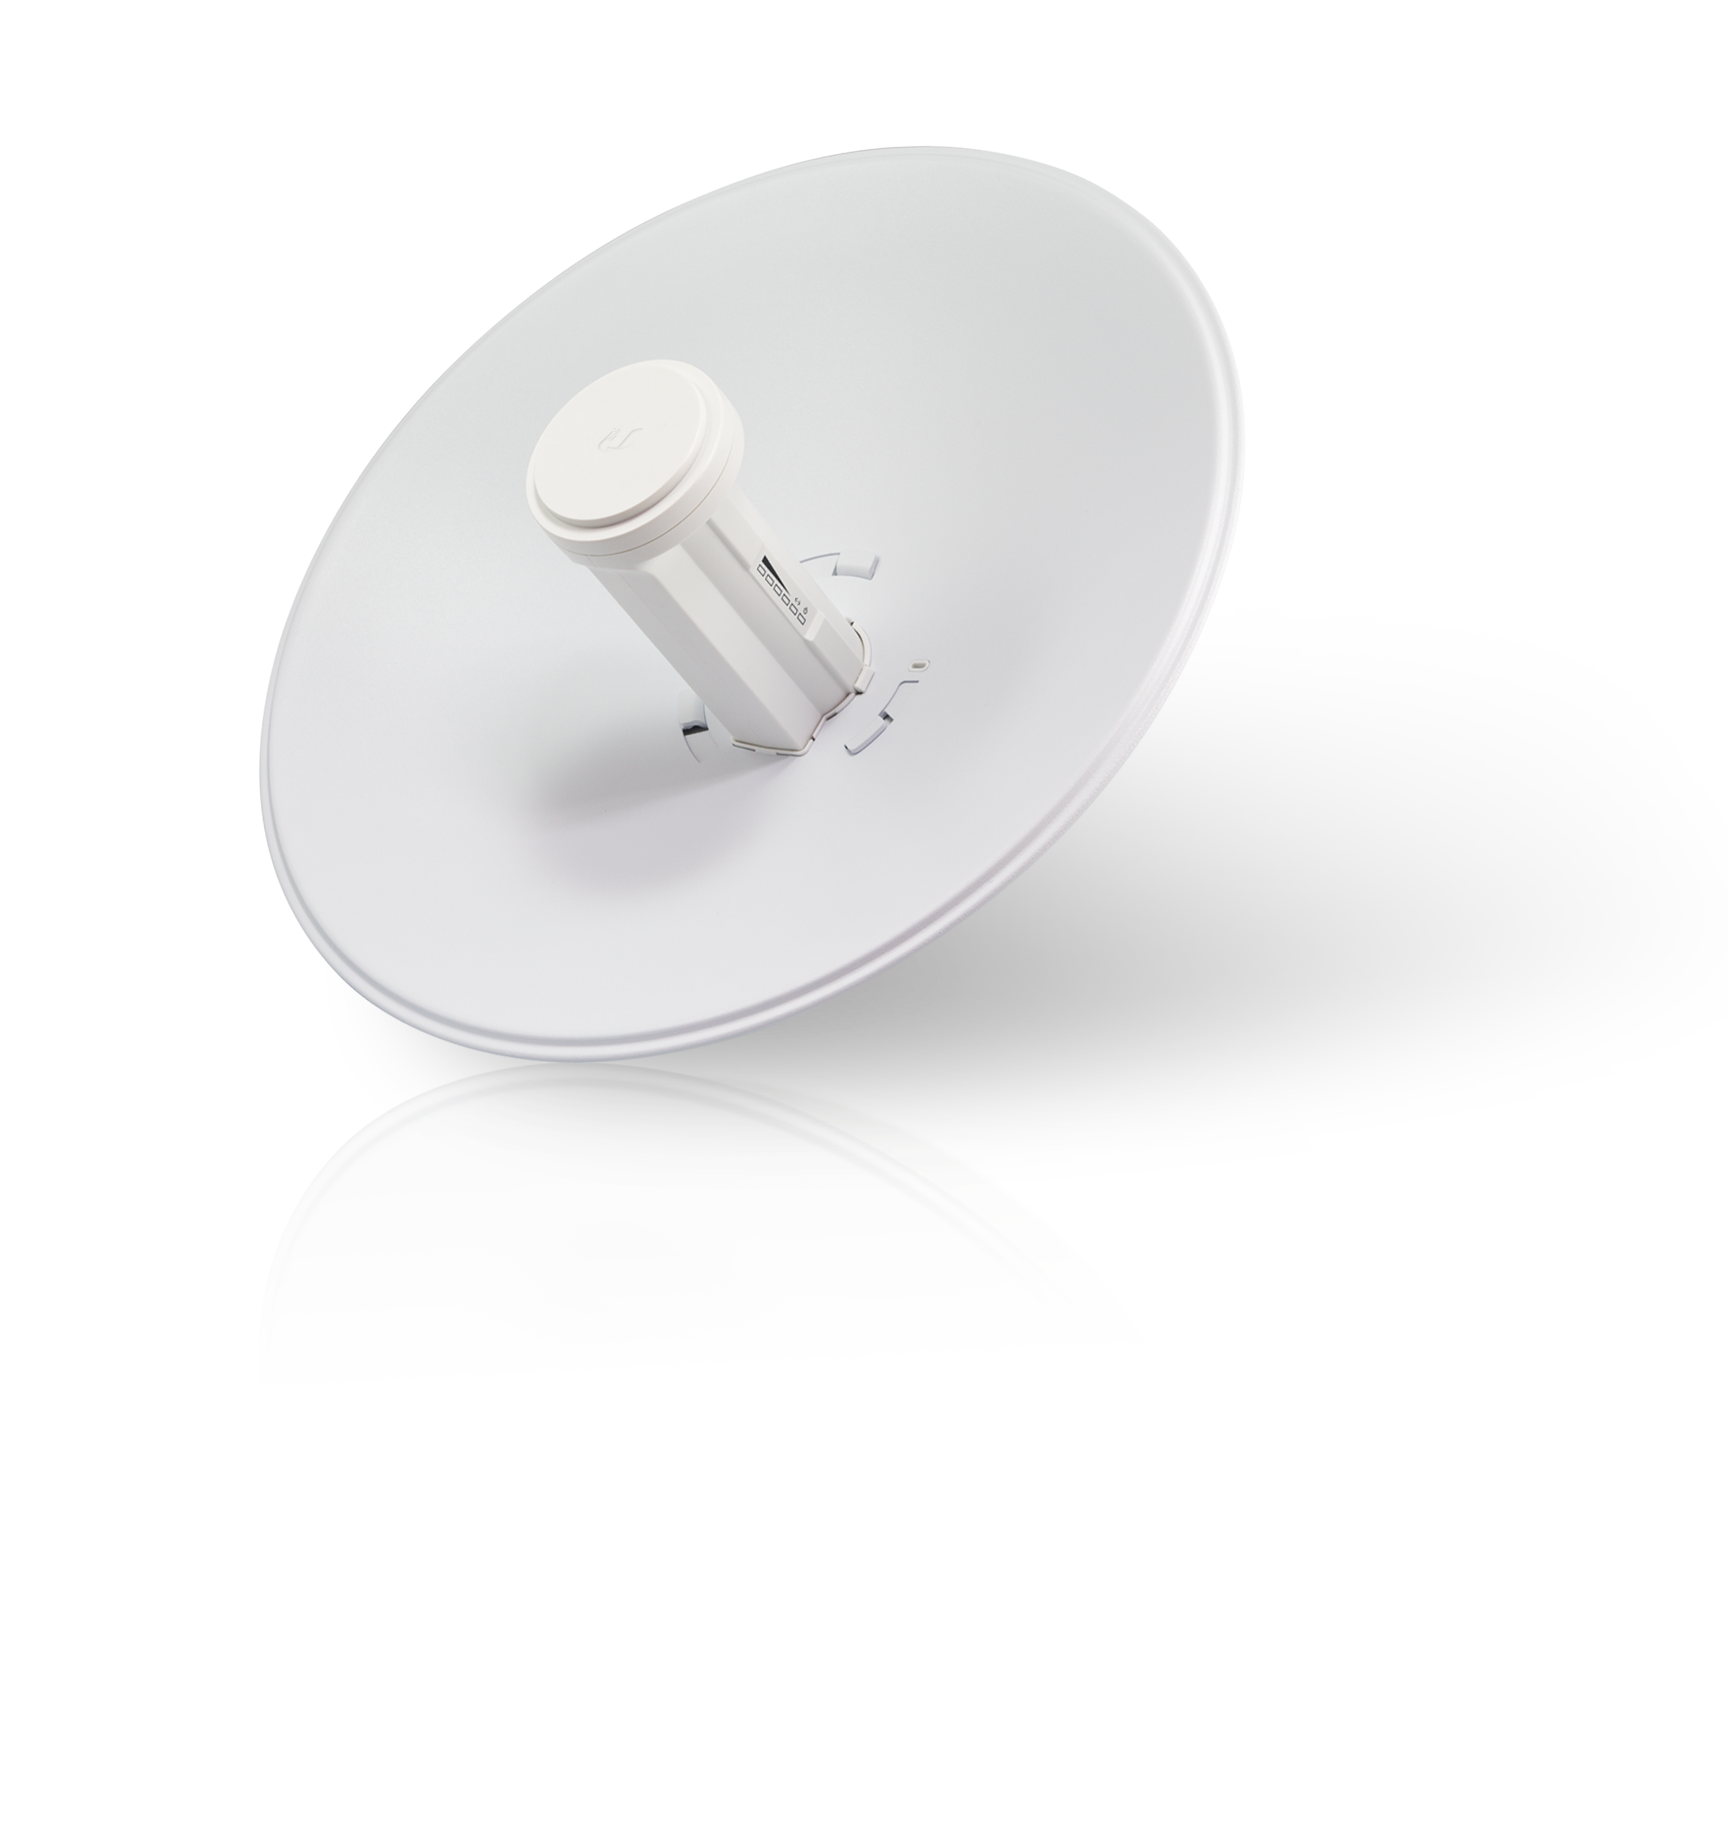 PBE-M5-300 Ubiquiti PowerBeam PBE-M5-300 5GHz AIRMAX 300mm